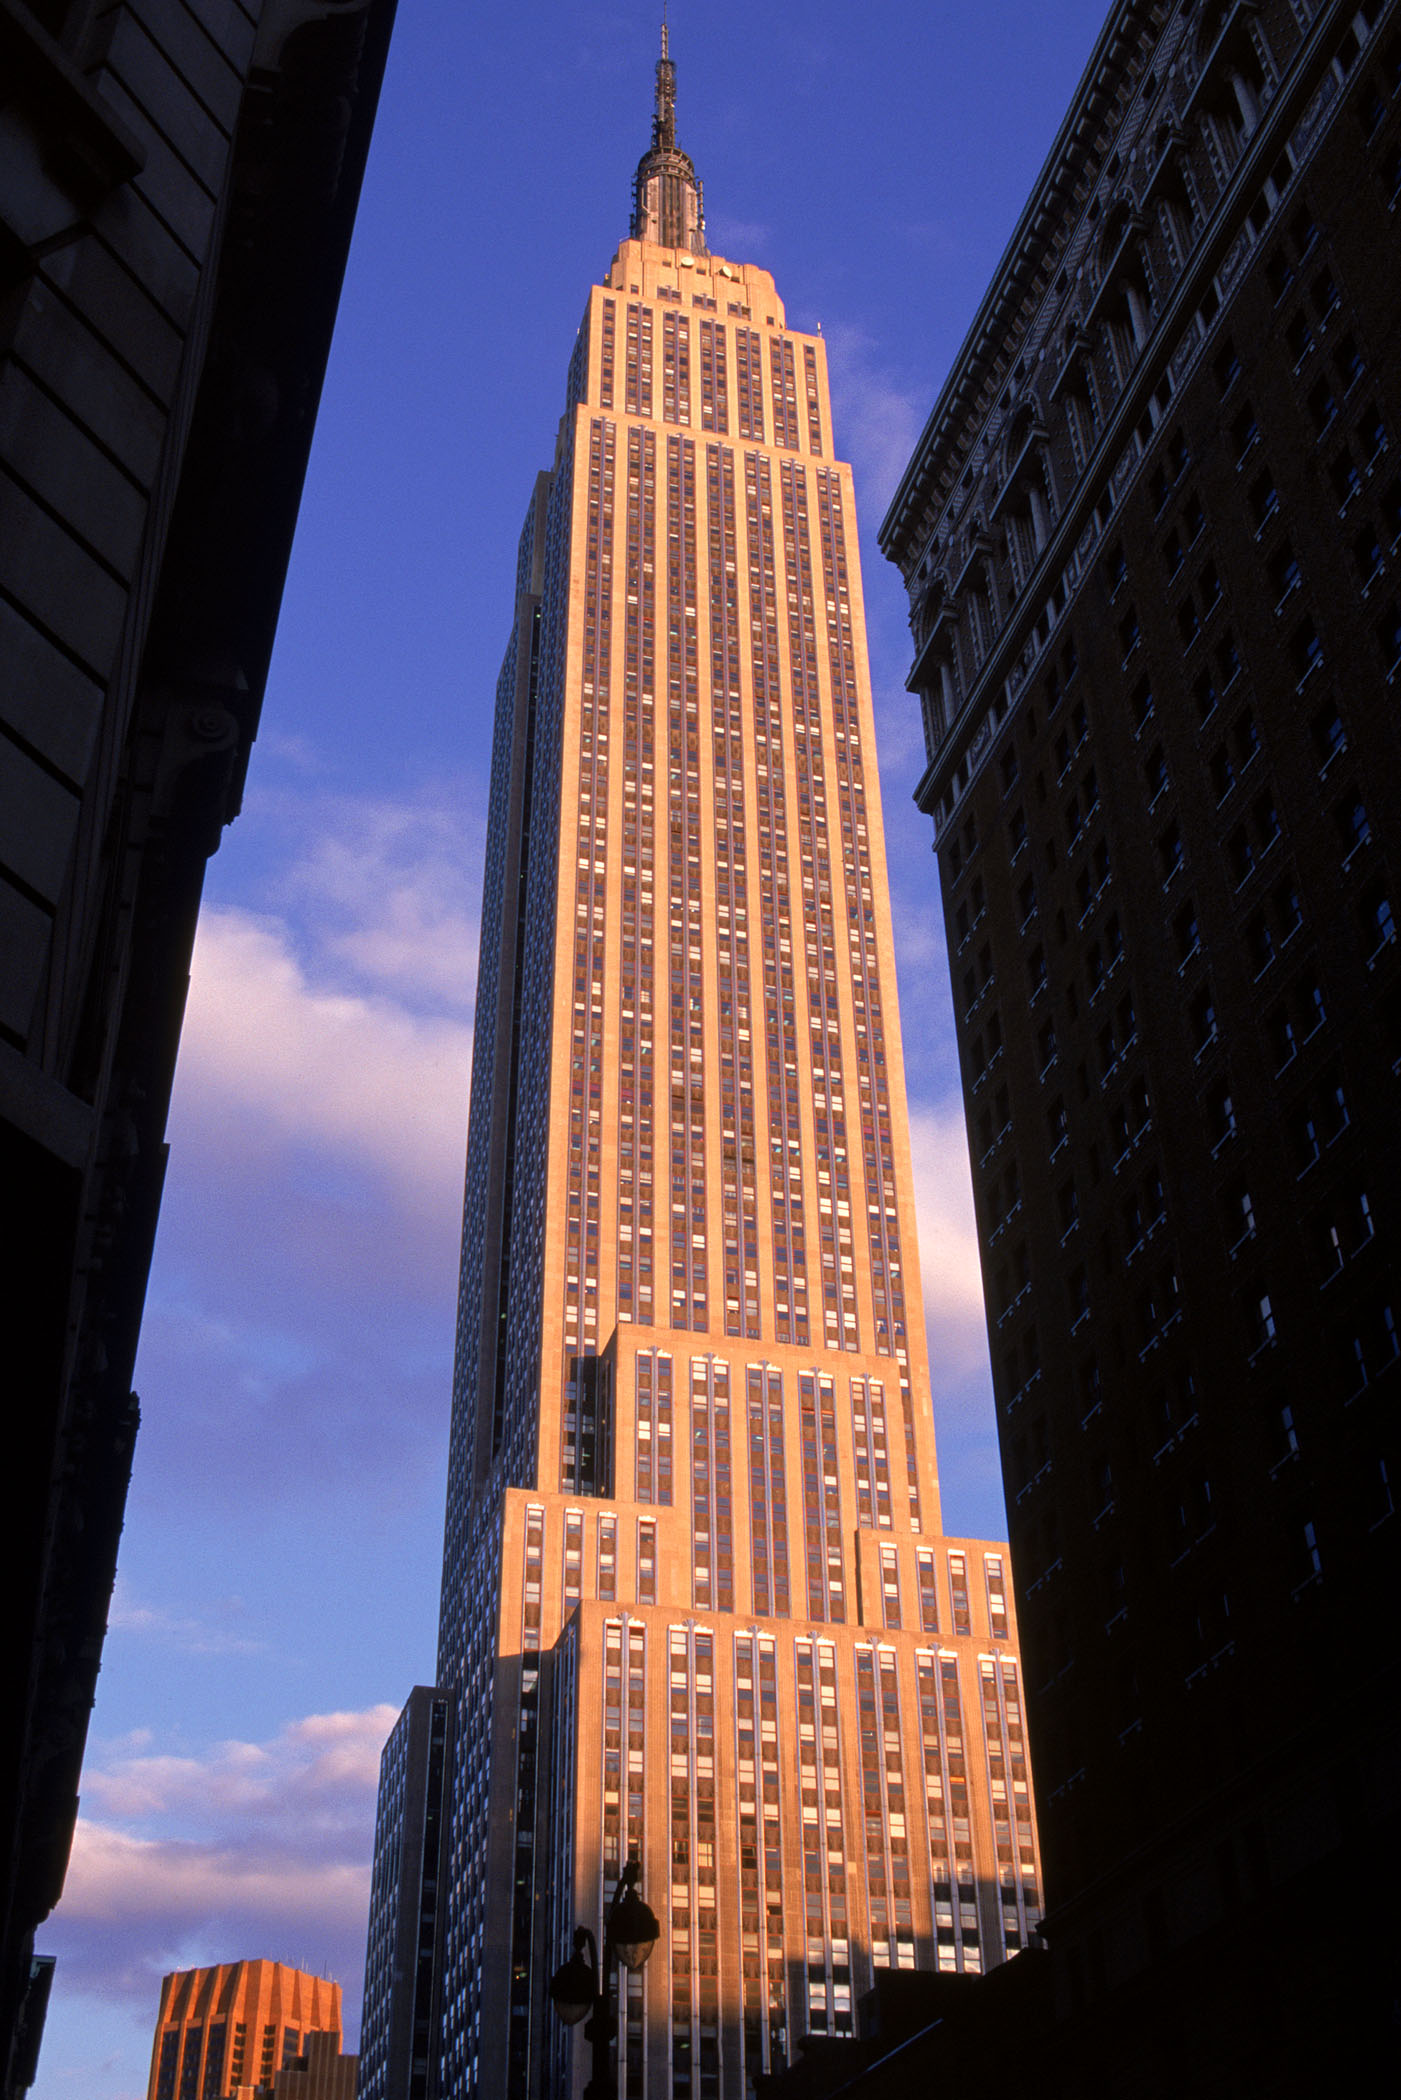 a brief history and description of the empire state building in new york